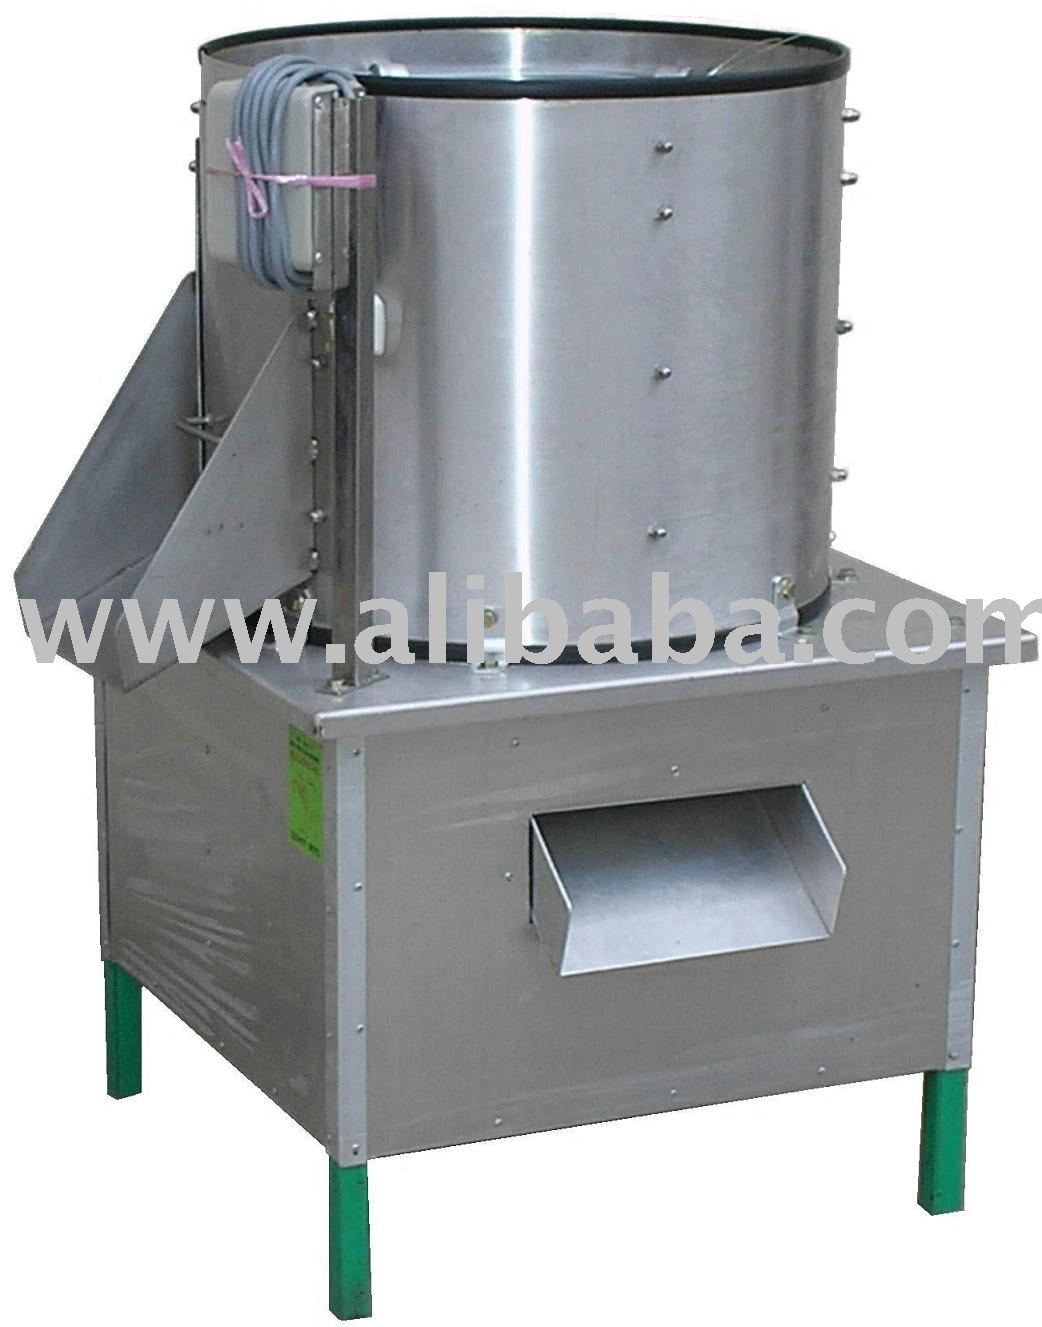 Onion Potato Peeler Machine Buy Onion Potato Peeler Machine Product On Alibabacom